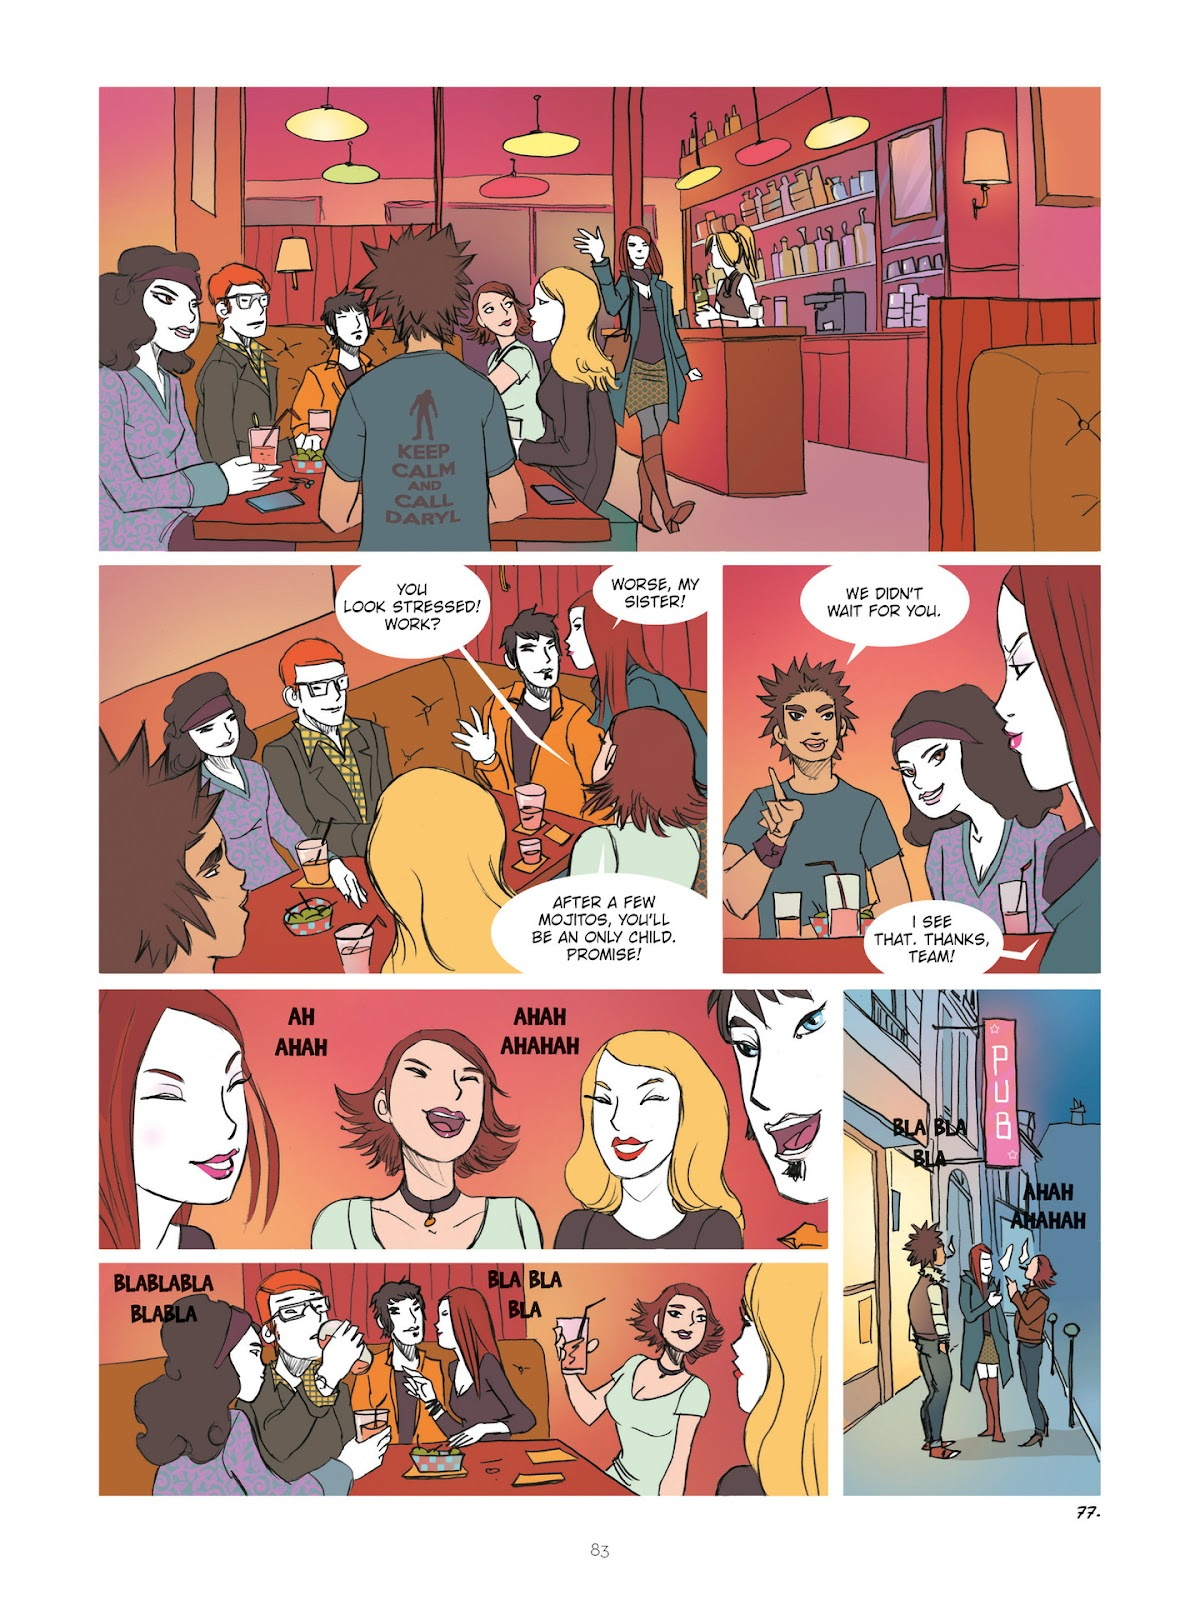 Read online Diary of A Femen comic -  Issue # TPB - 85